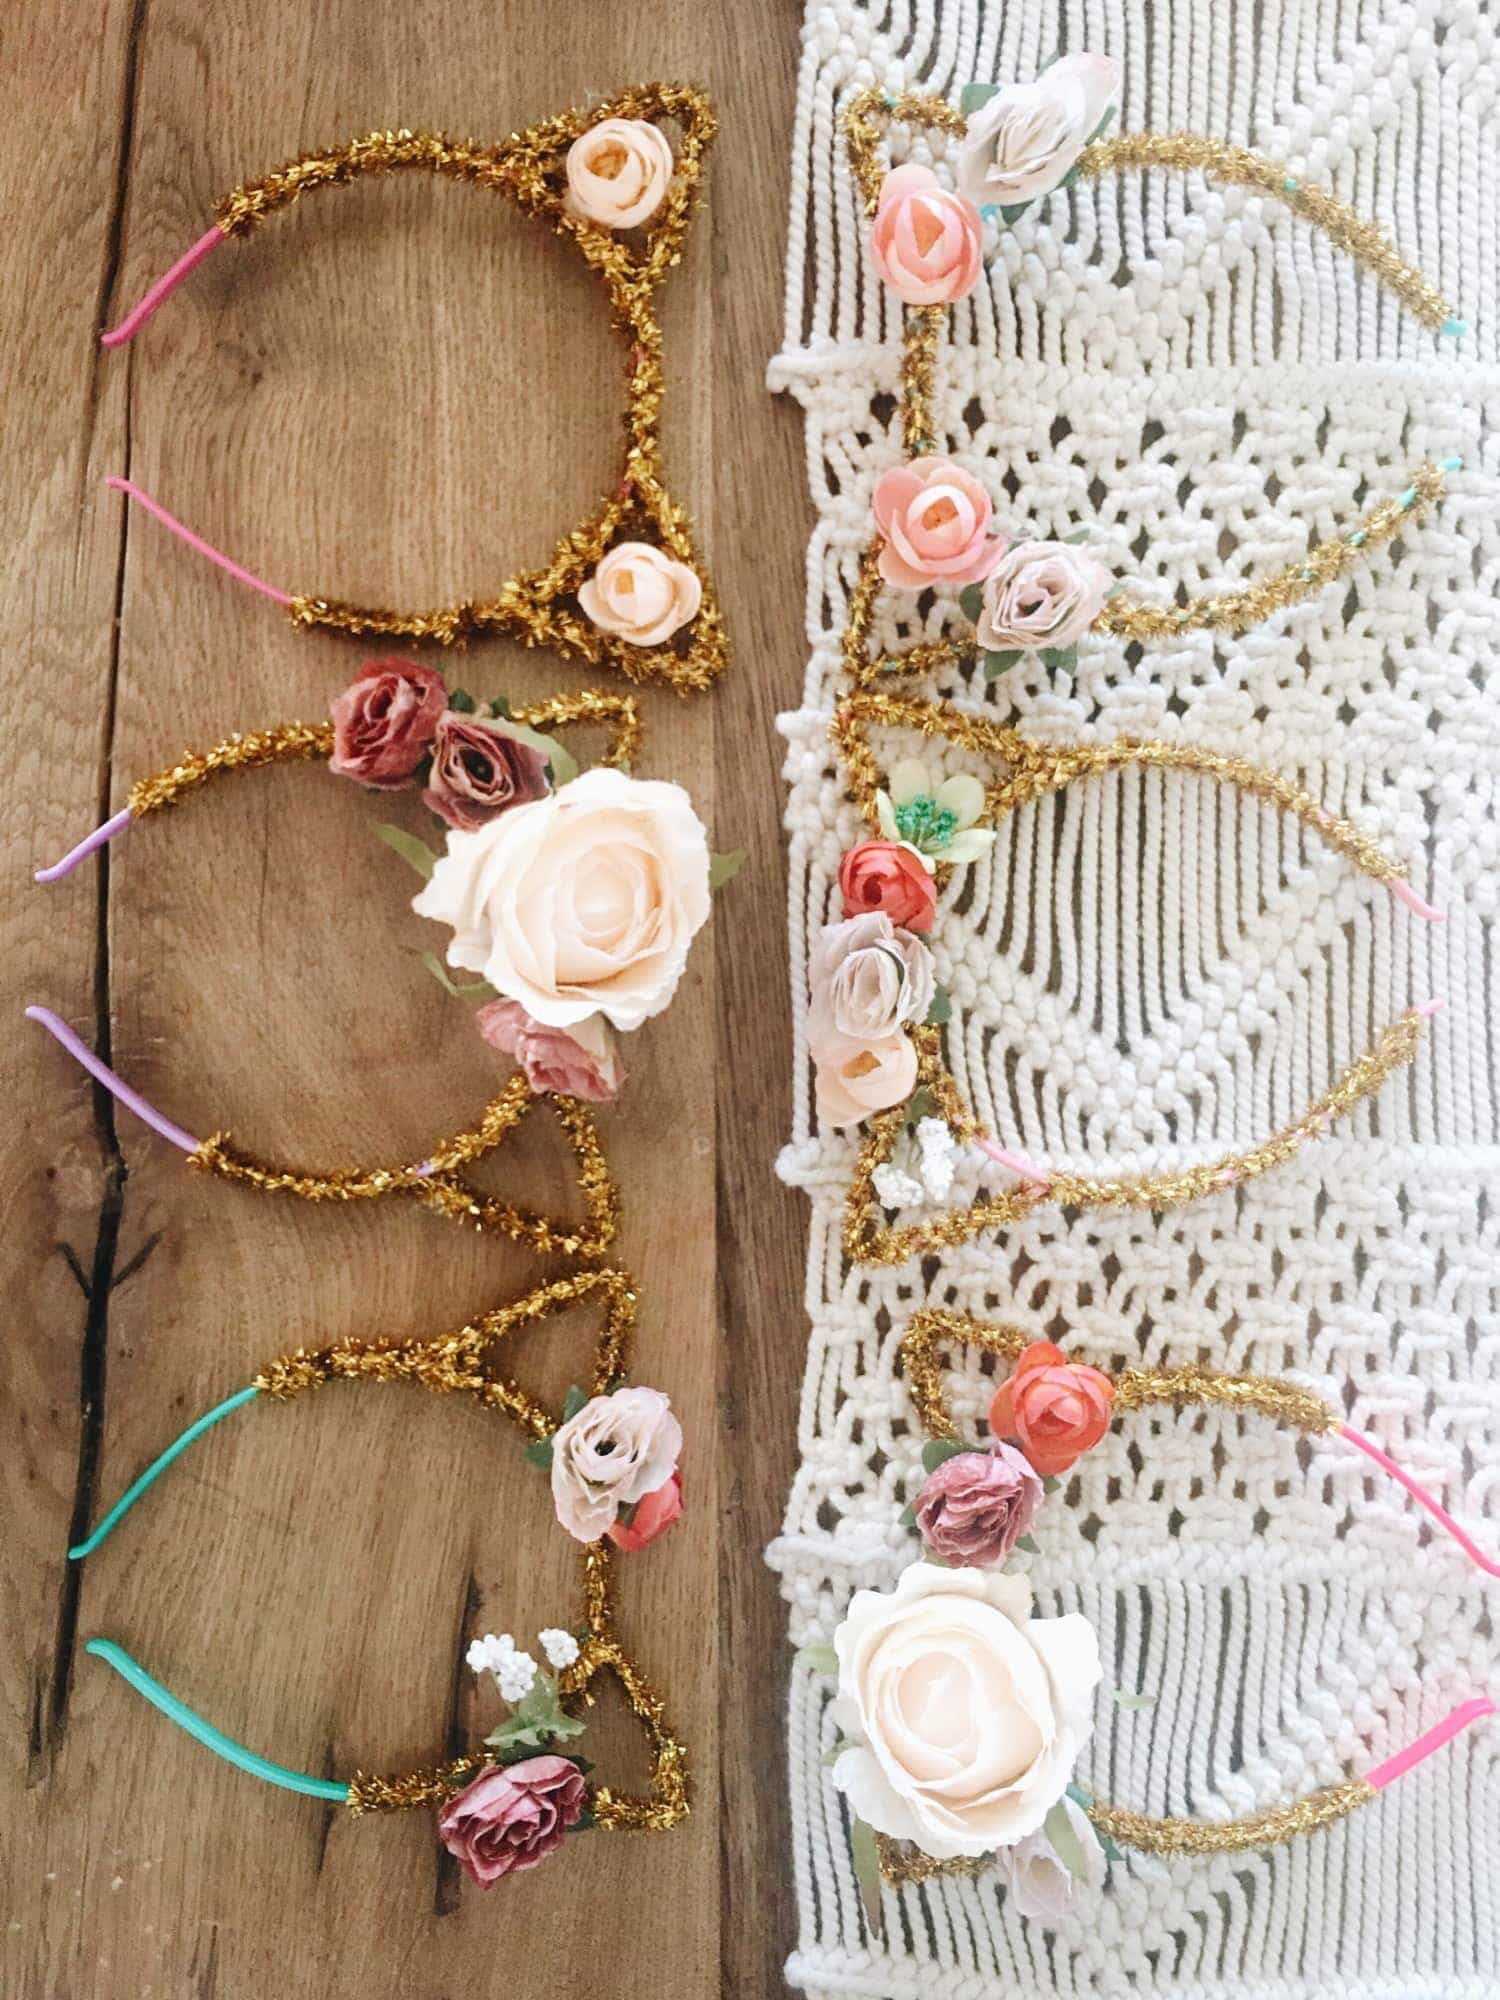 Diy kitten flower crown i am always on the hunt for a fun craft with my kids and when i saw on pinterest so many options for diy flower crowns i thought i would give it izmirmasajfo